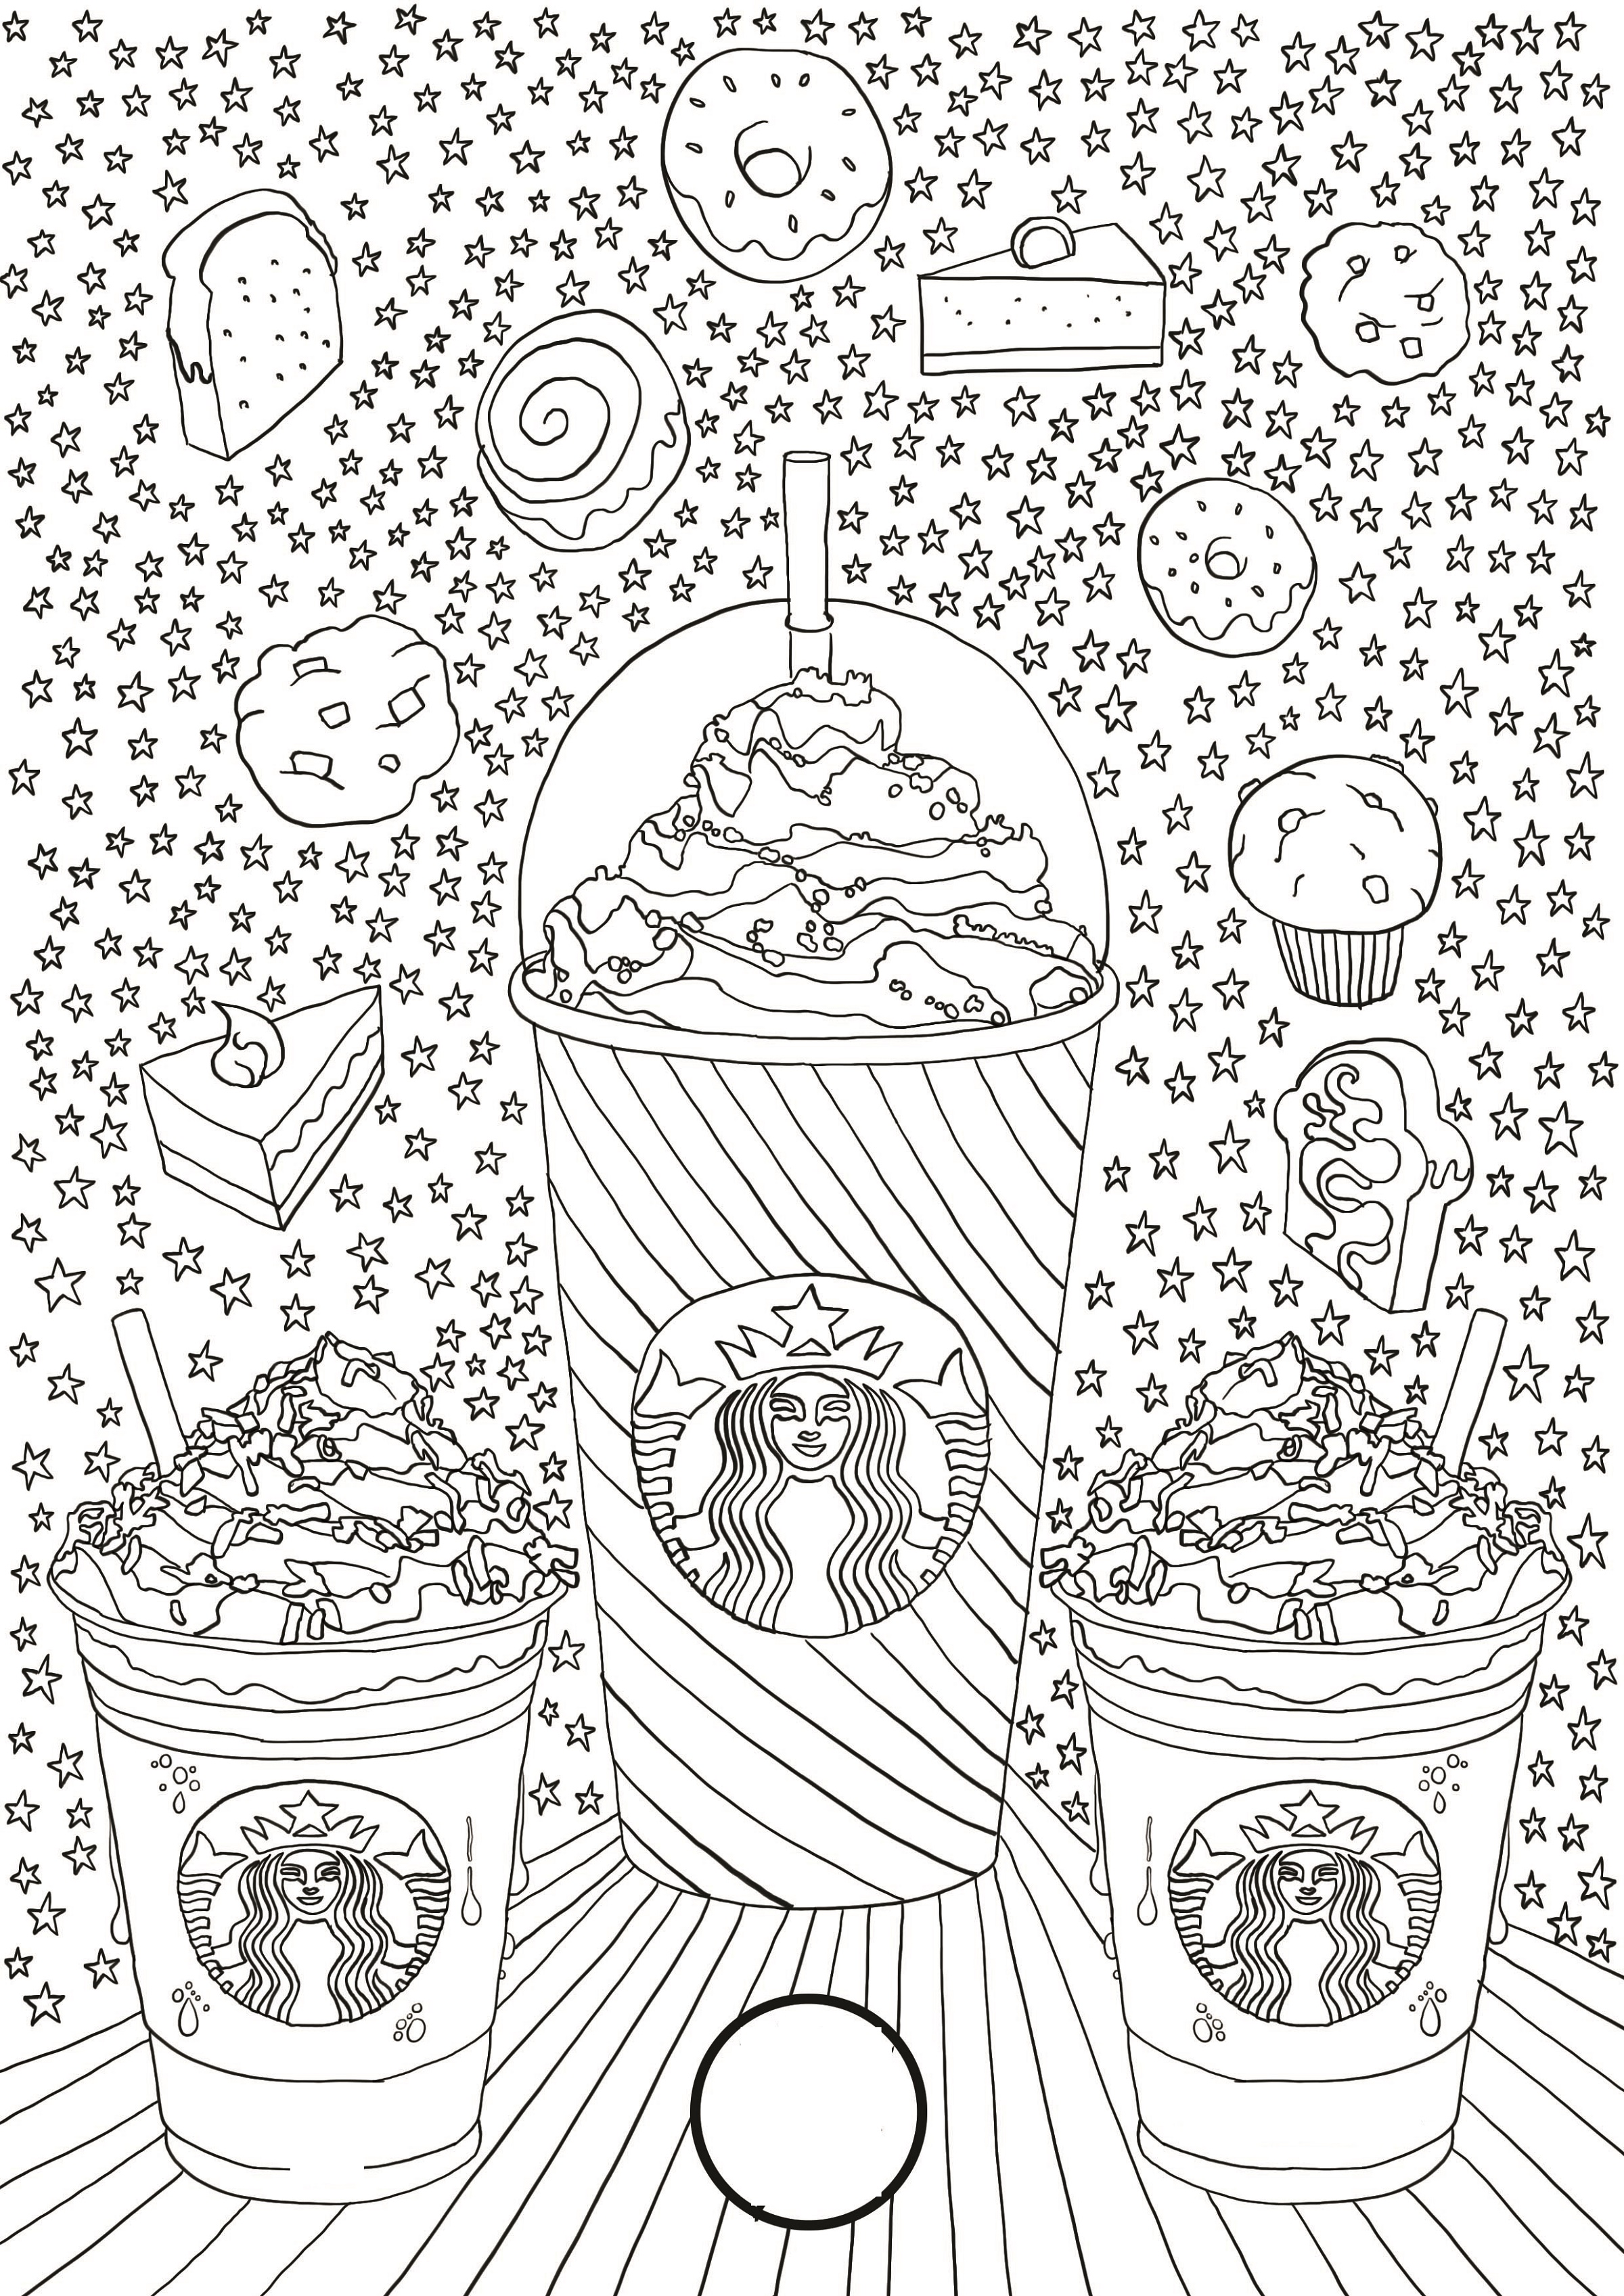 Starbucks Coloring Page